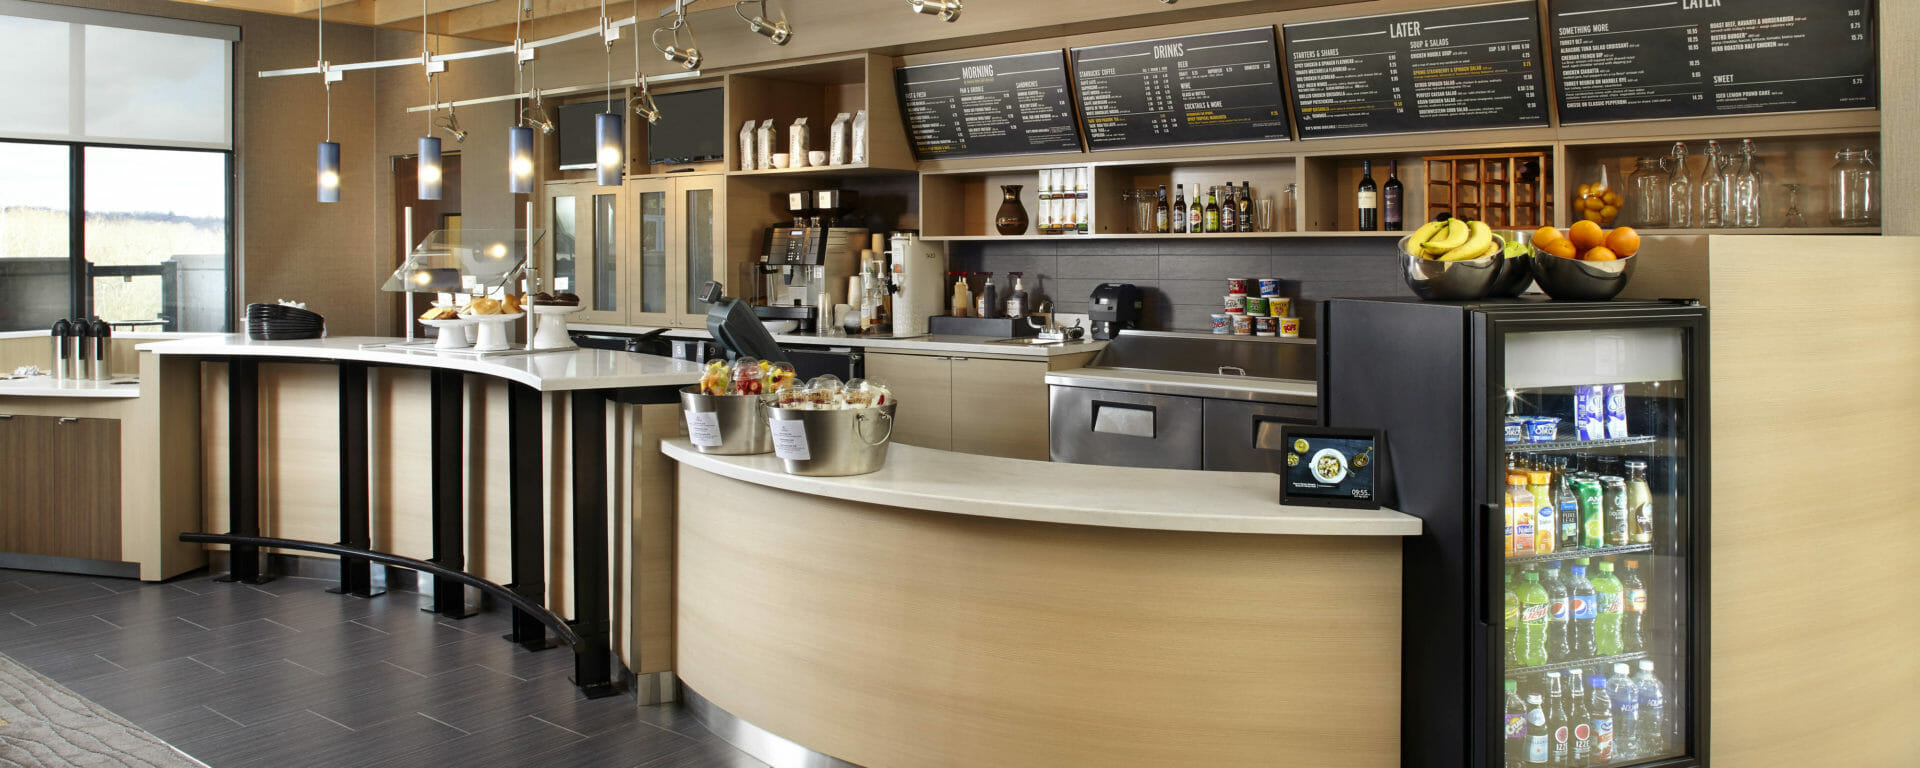 The Bistro at Courtyard hotels by Marriott